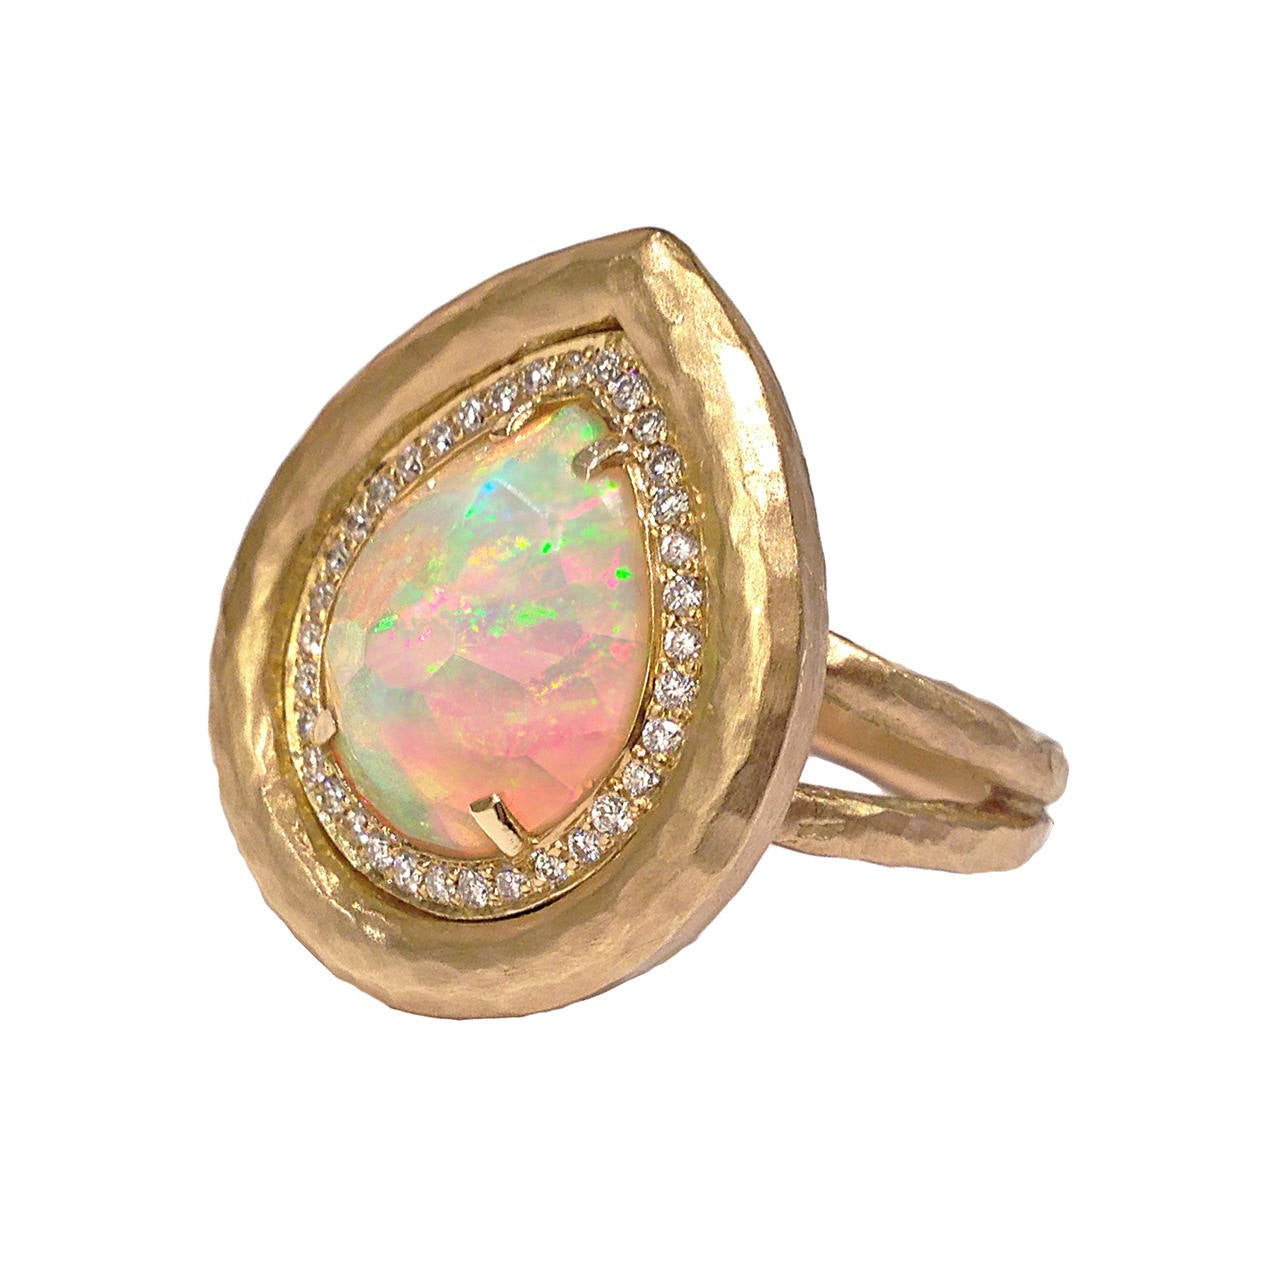 Pamela Froman Faceted Fiery Ethiopian Opal Diamond Crushed Gold Ring at 1stdibs